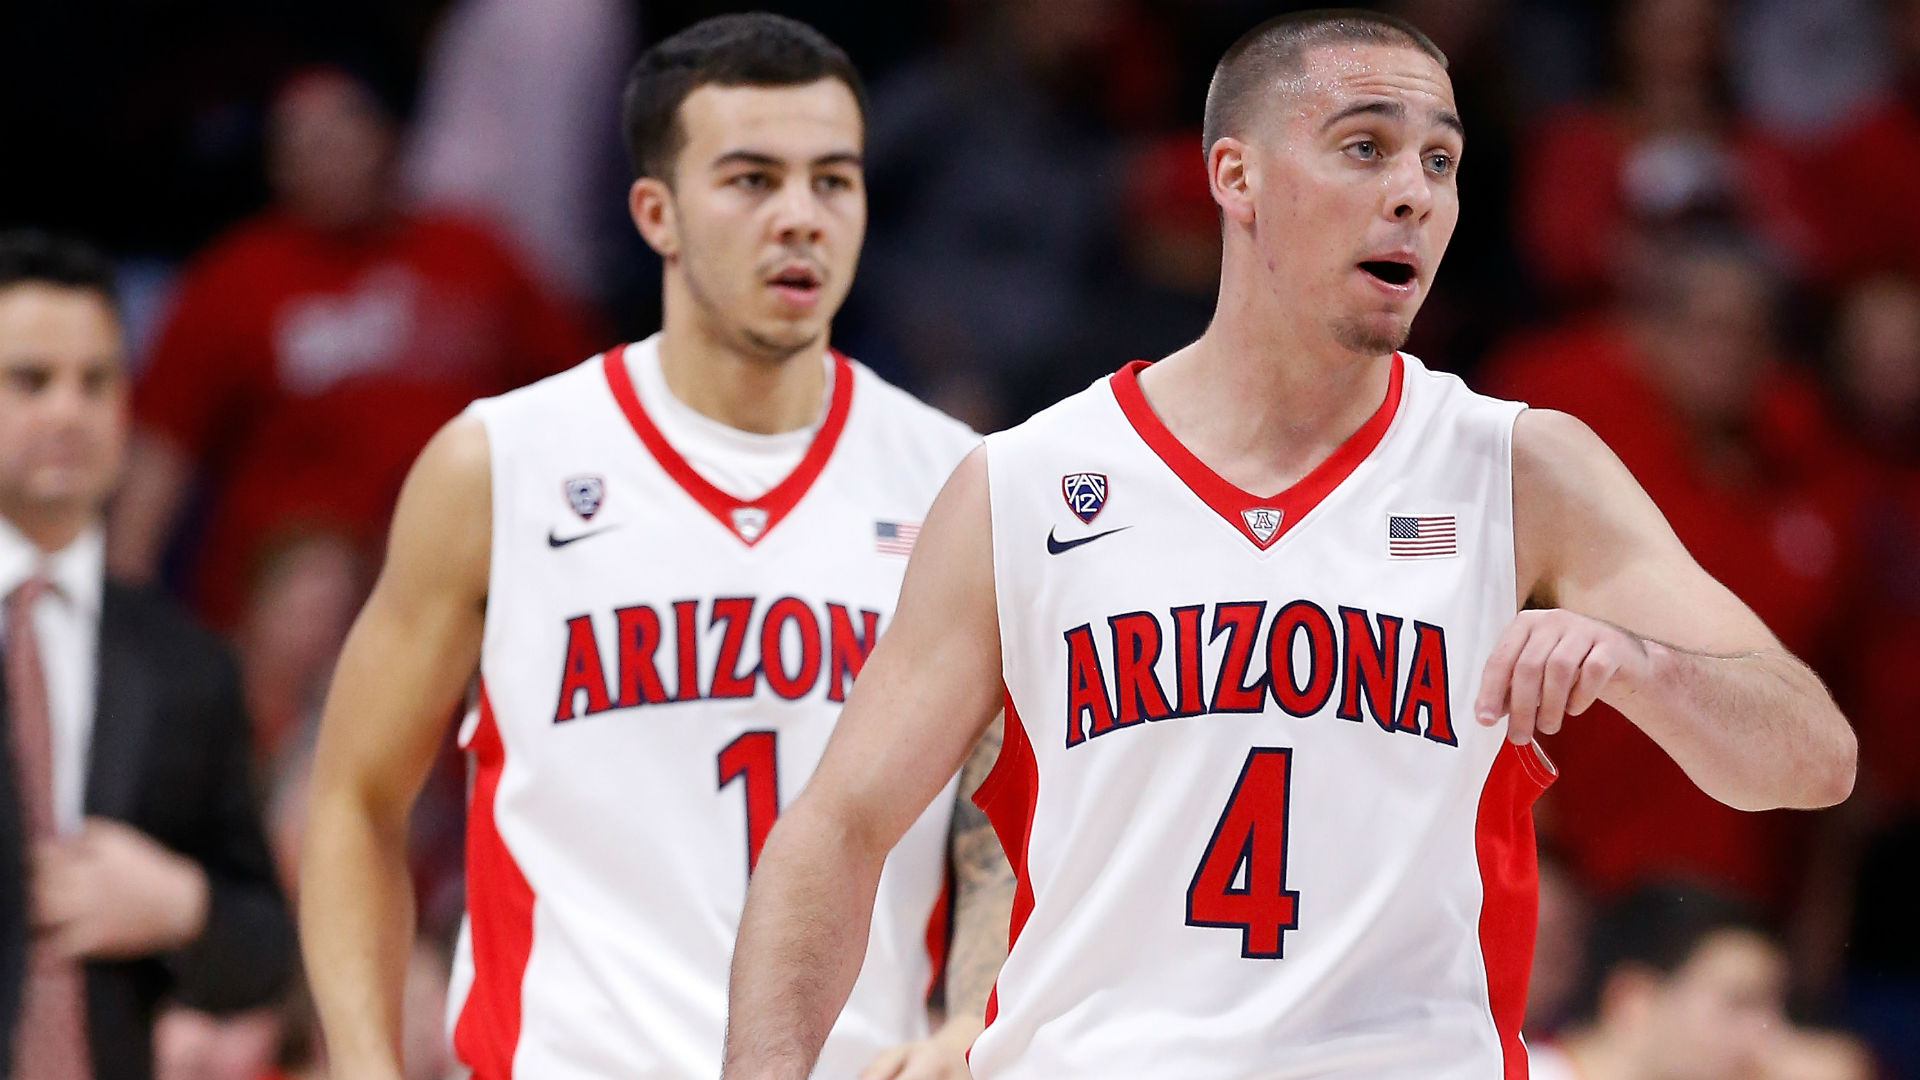 College basketball betting lines and picks – Arizona looks for revenge against Oregon State